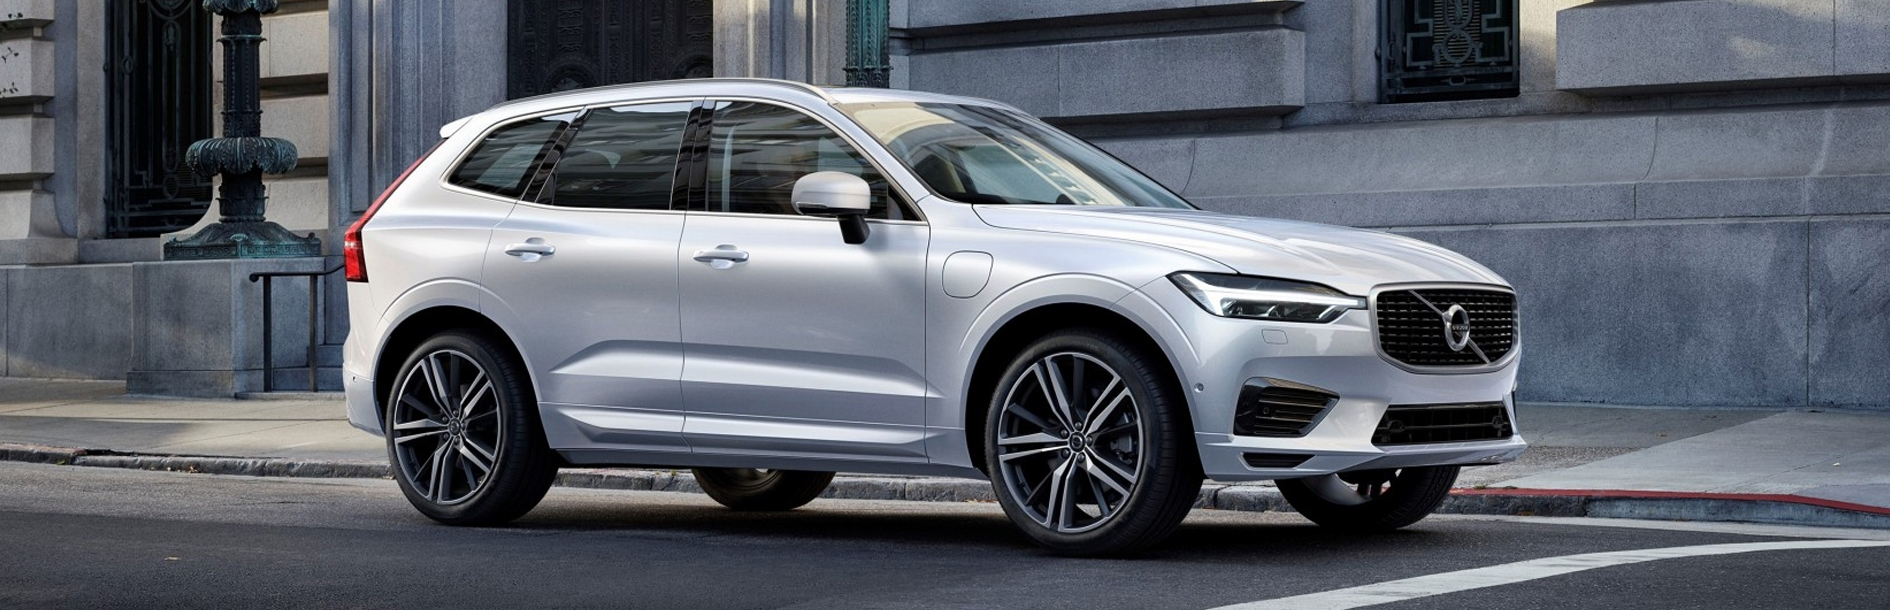 Volvo Xc90 Alloy Wheels & Performance Tyres - Buy Alloys at Wheelbase